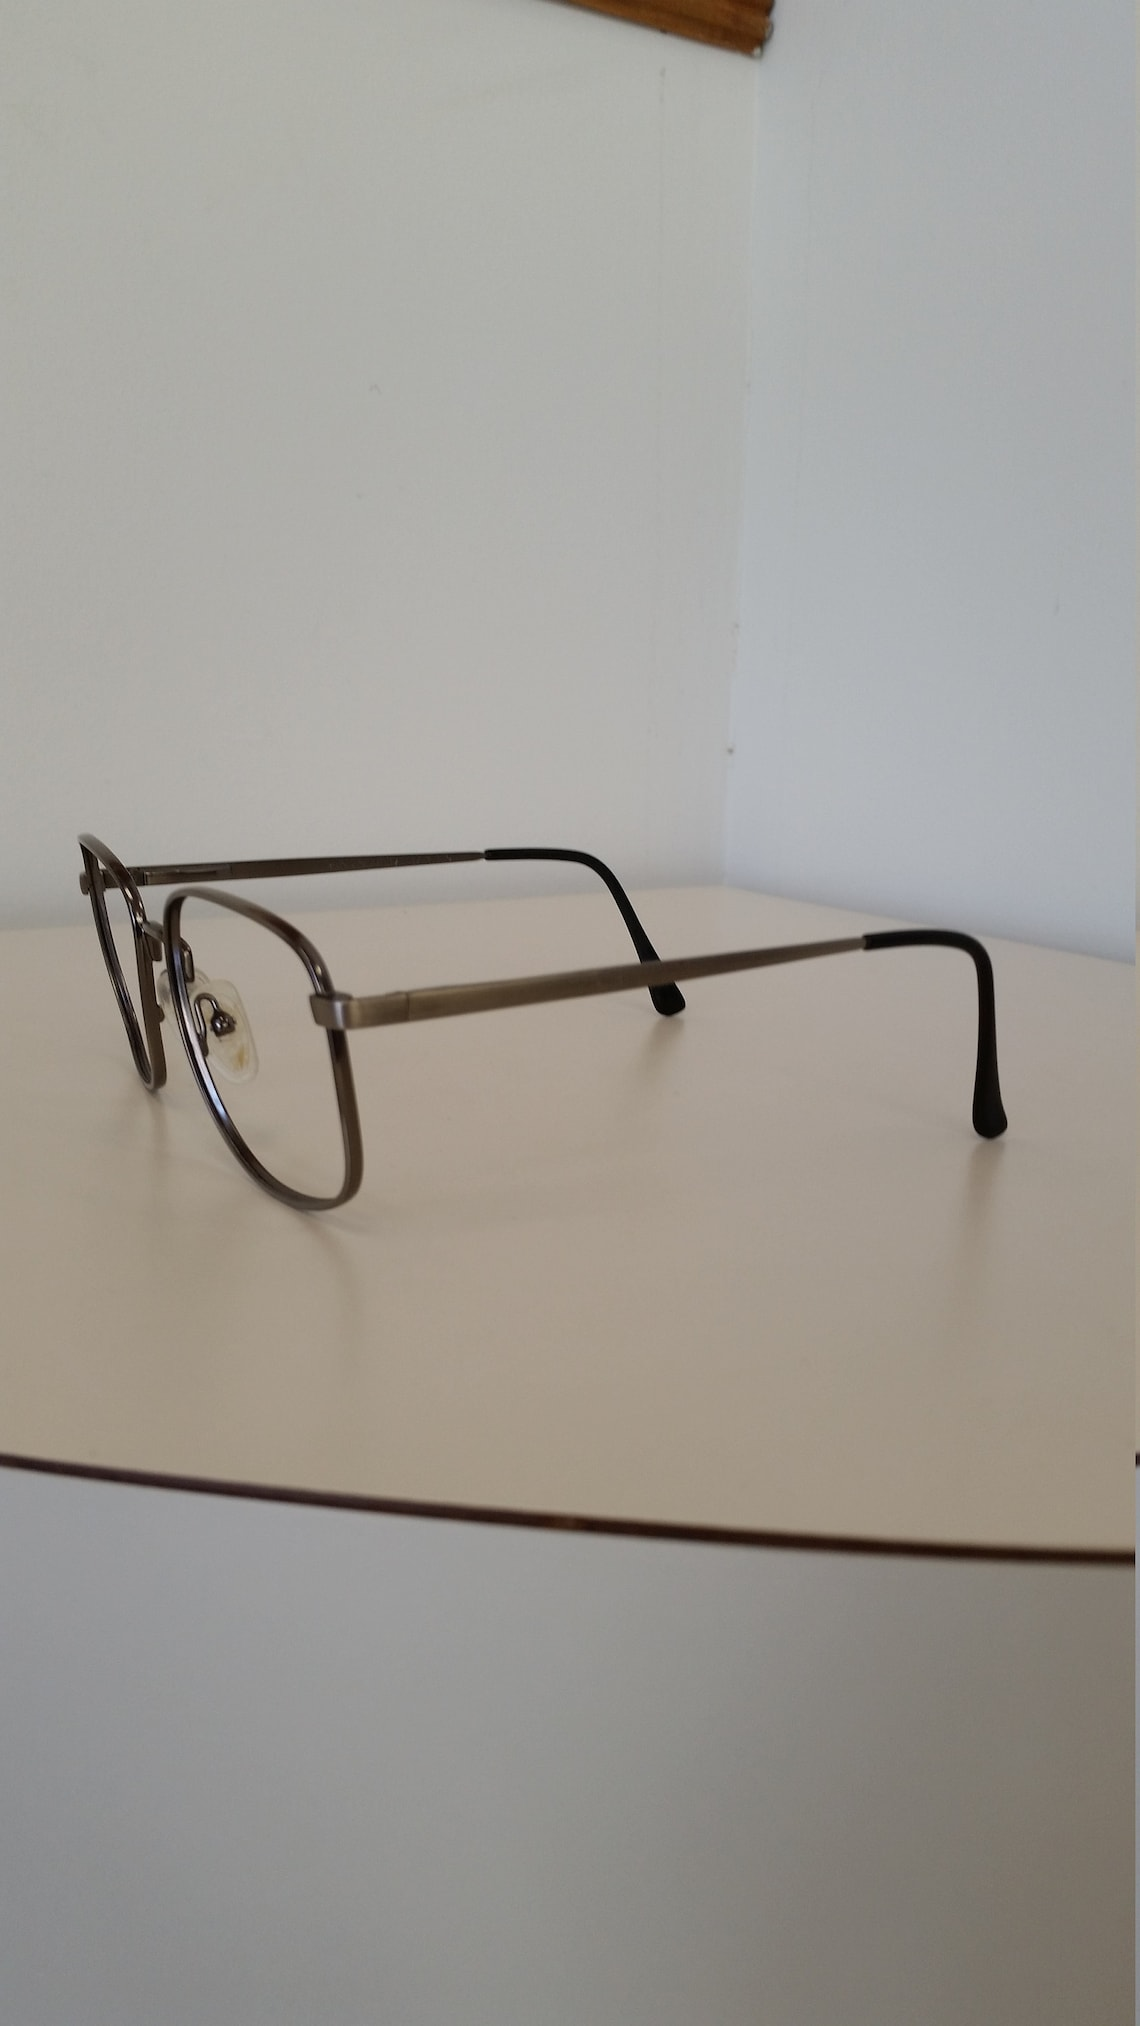 1960s AO Safety Frame; Silver Metal w/ Spring Hinges; Excellent Condition; Rx-able and Ready for Lenses (Note: no longer safety rated)